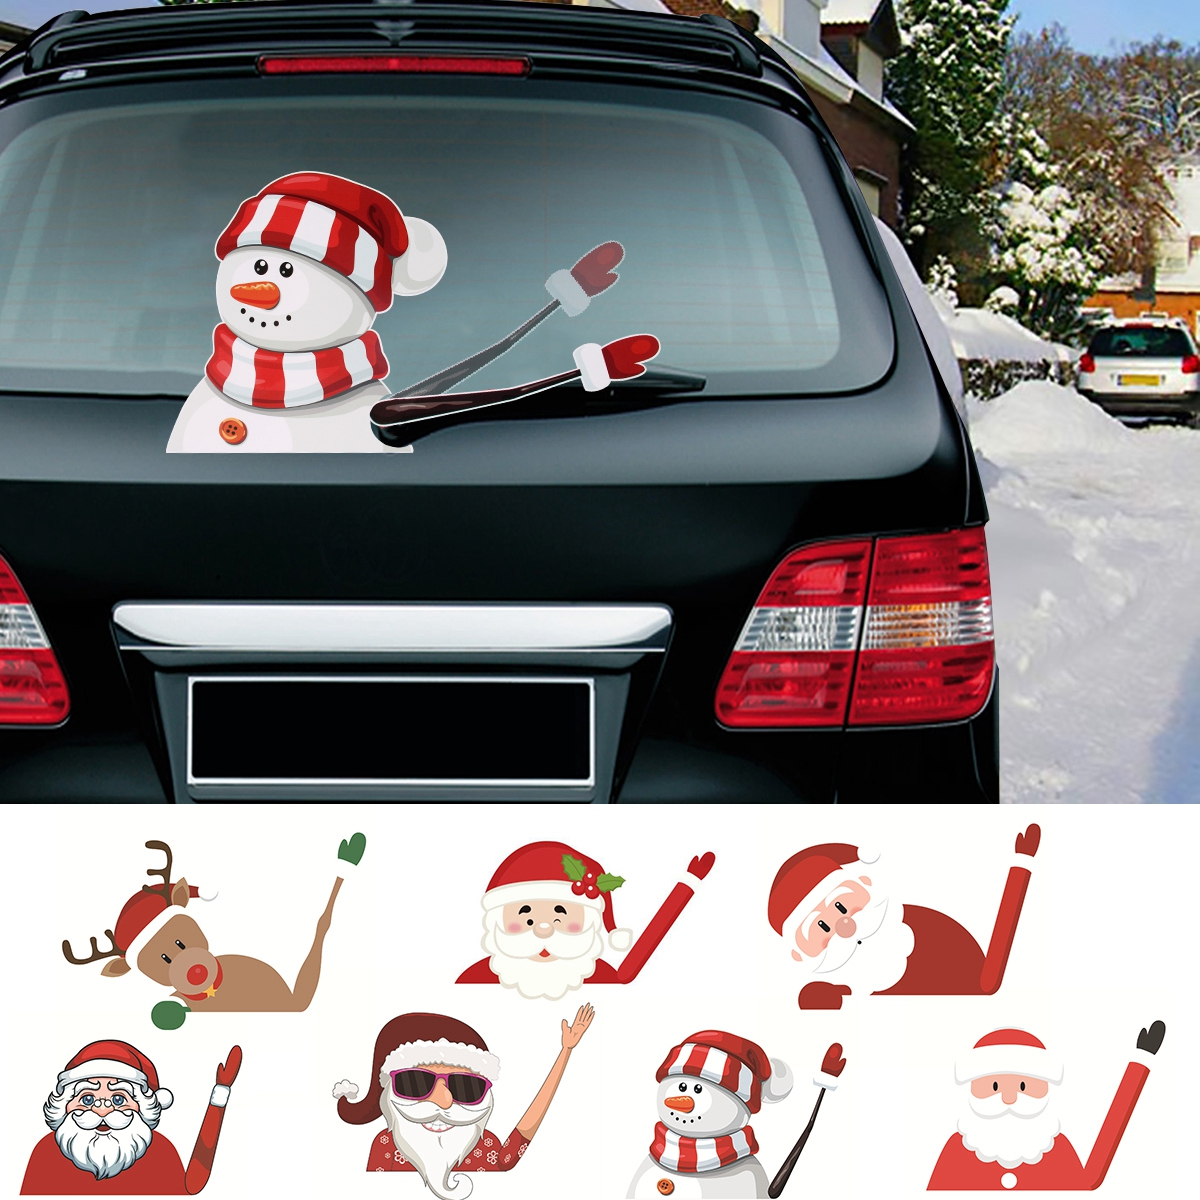 Details About Merry Christmas Snowman Wiper Decals Waving Car Decoration 2019 Gift